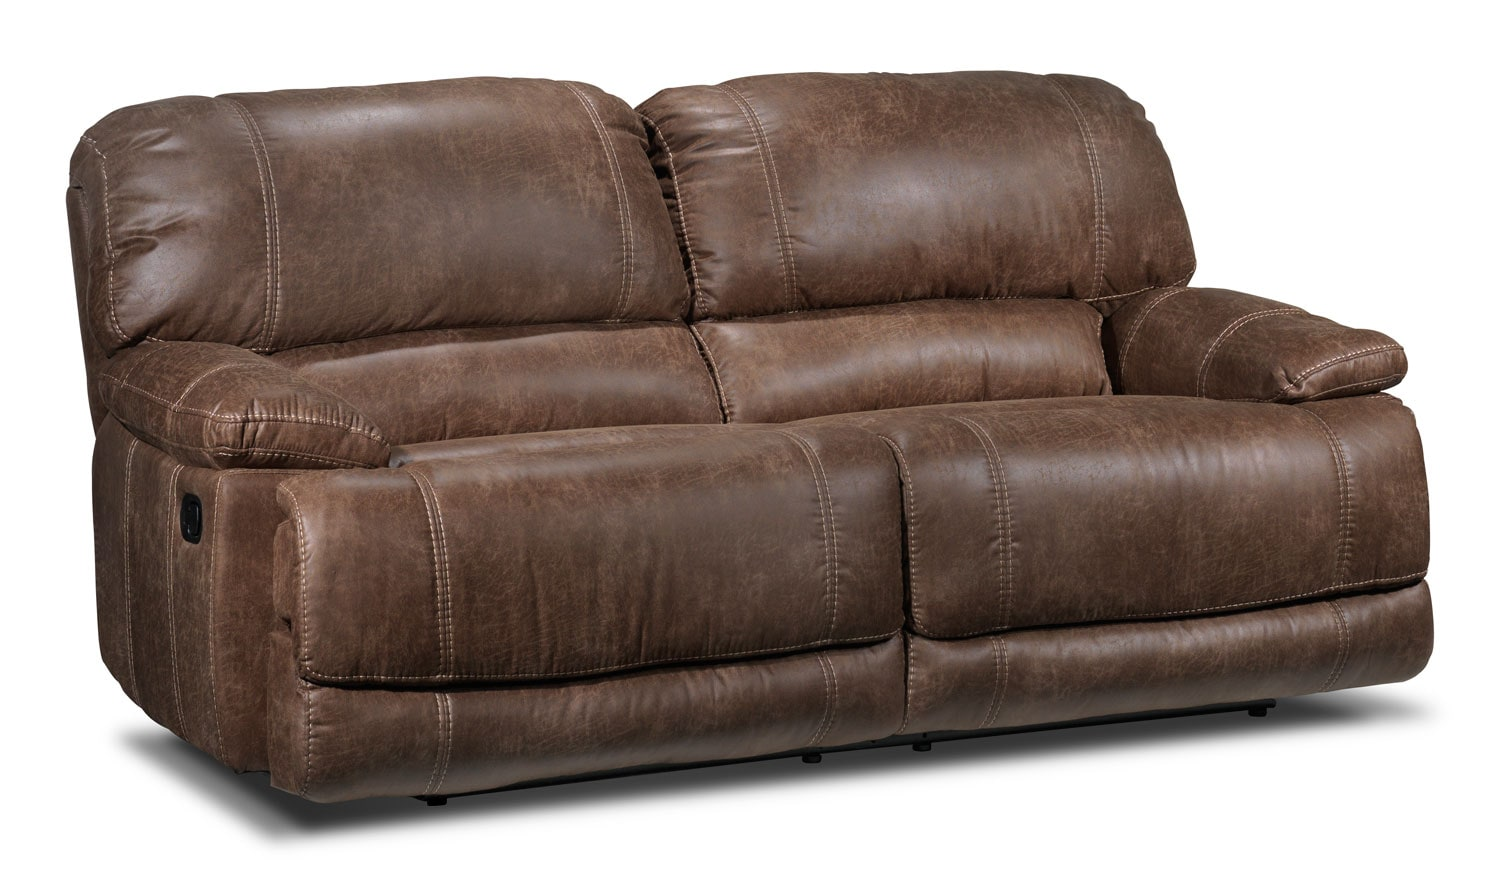 Durango Reclining Sofa - Saddle Brown